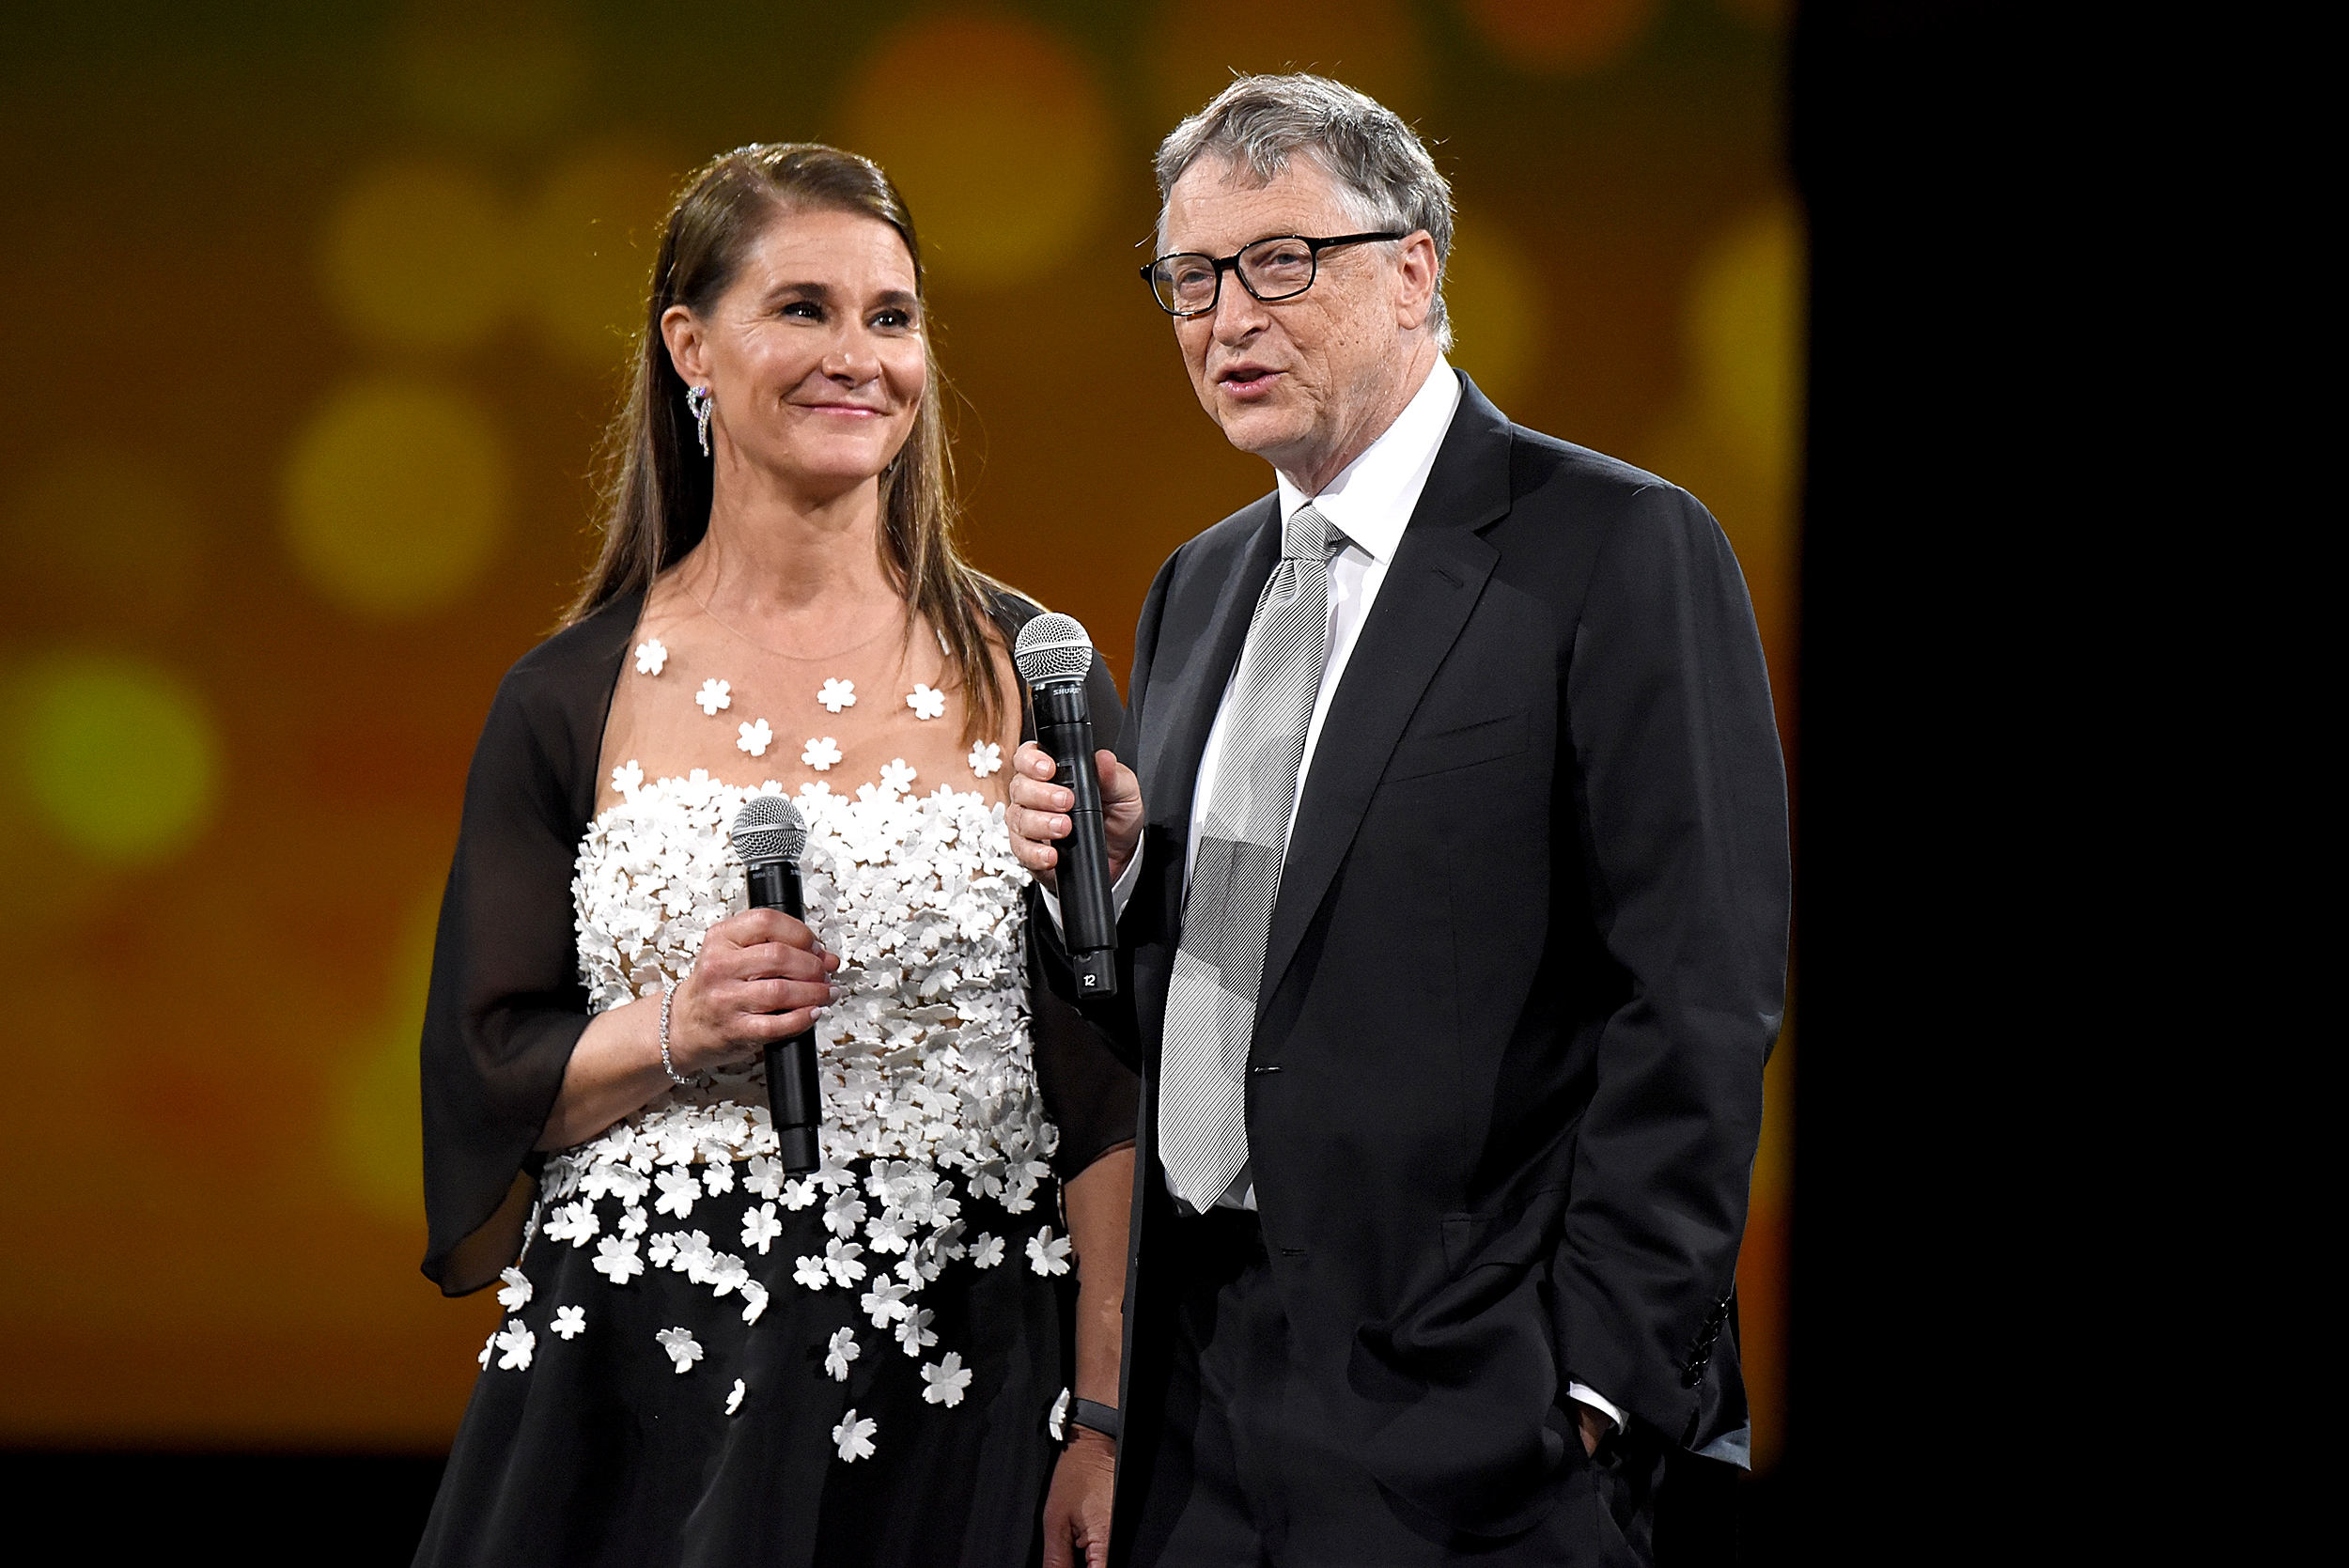 Bill and Melinda Gates are getting divorced, the future of the foundation  in question - Newsallnewsflash